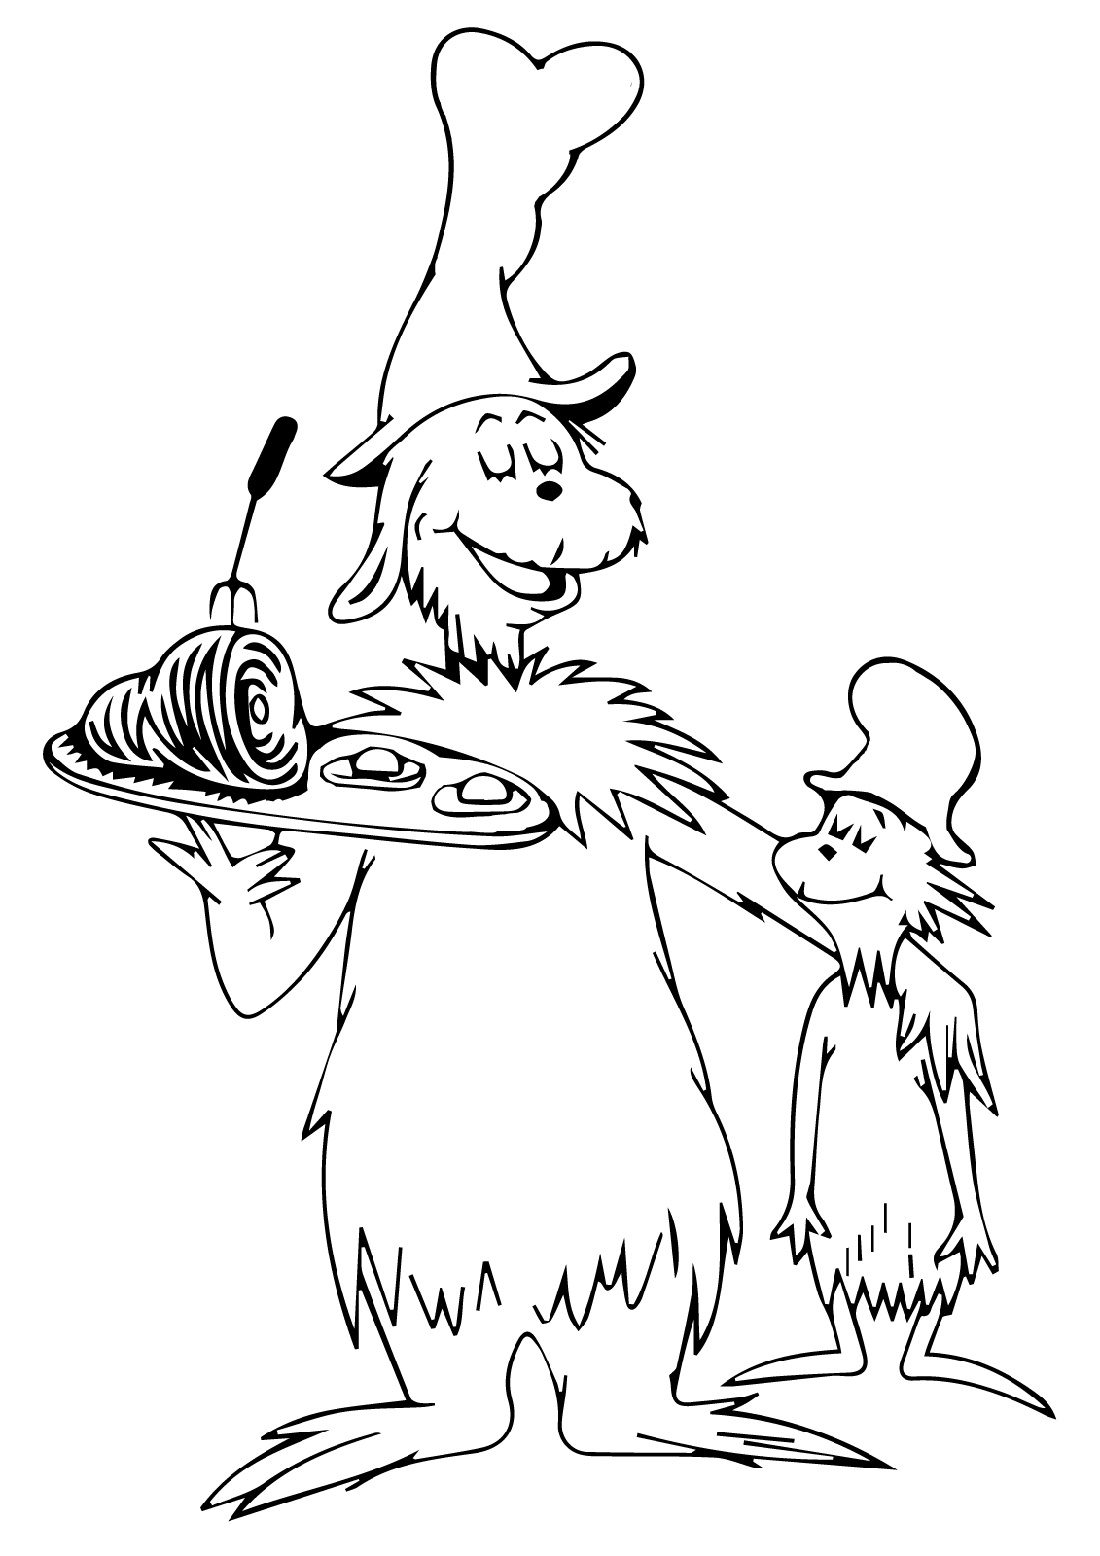 green eggs and ham coloring pages green eggs and ham coloring page best coloring pages for coloring and pages ham green eggs